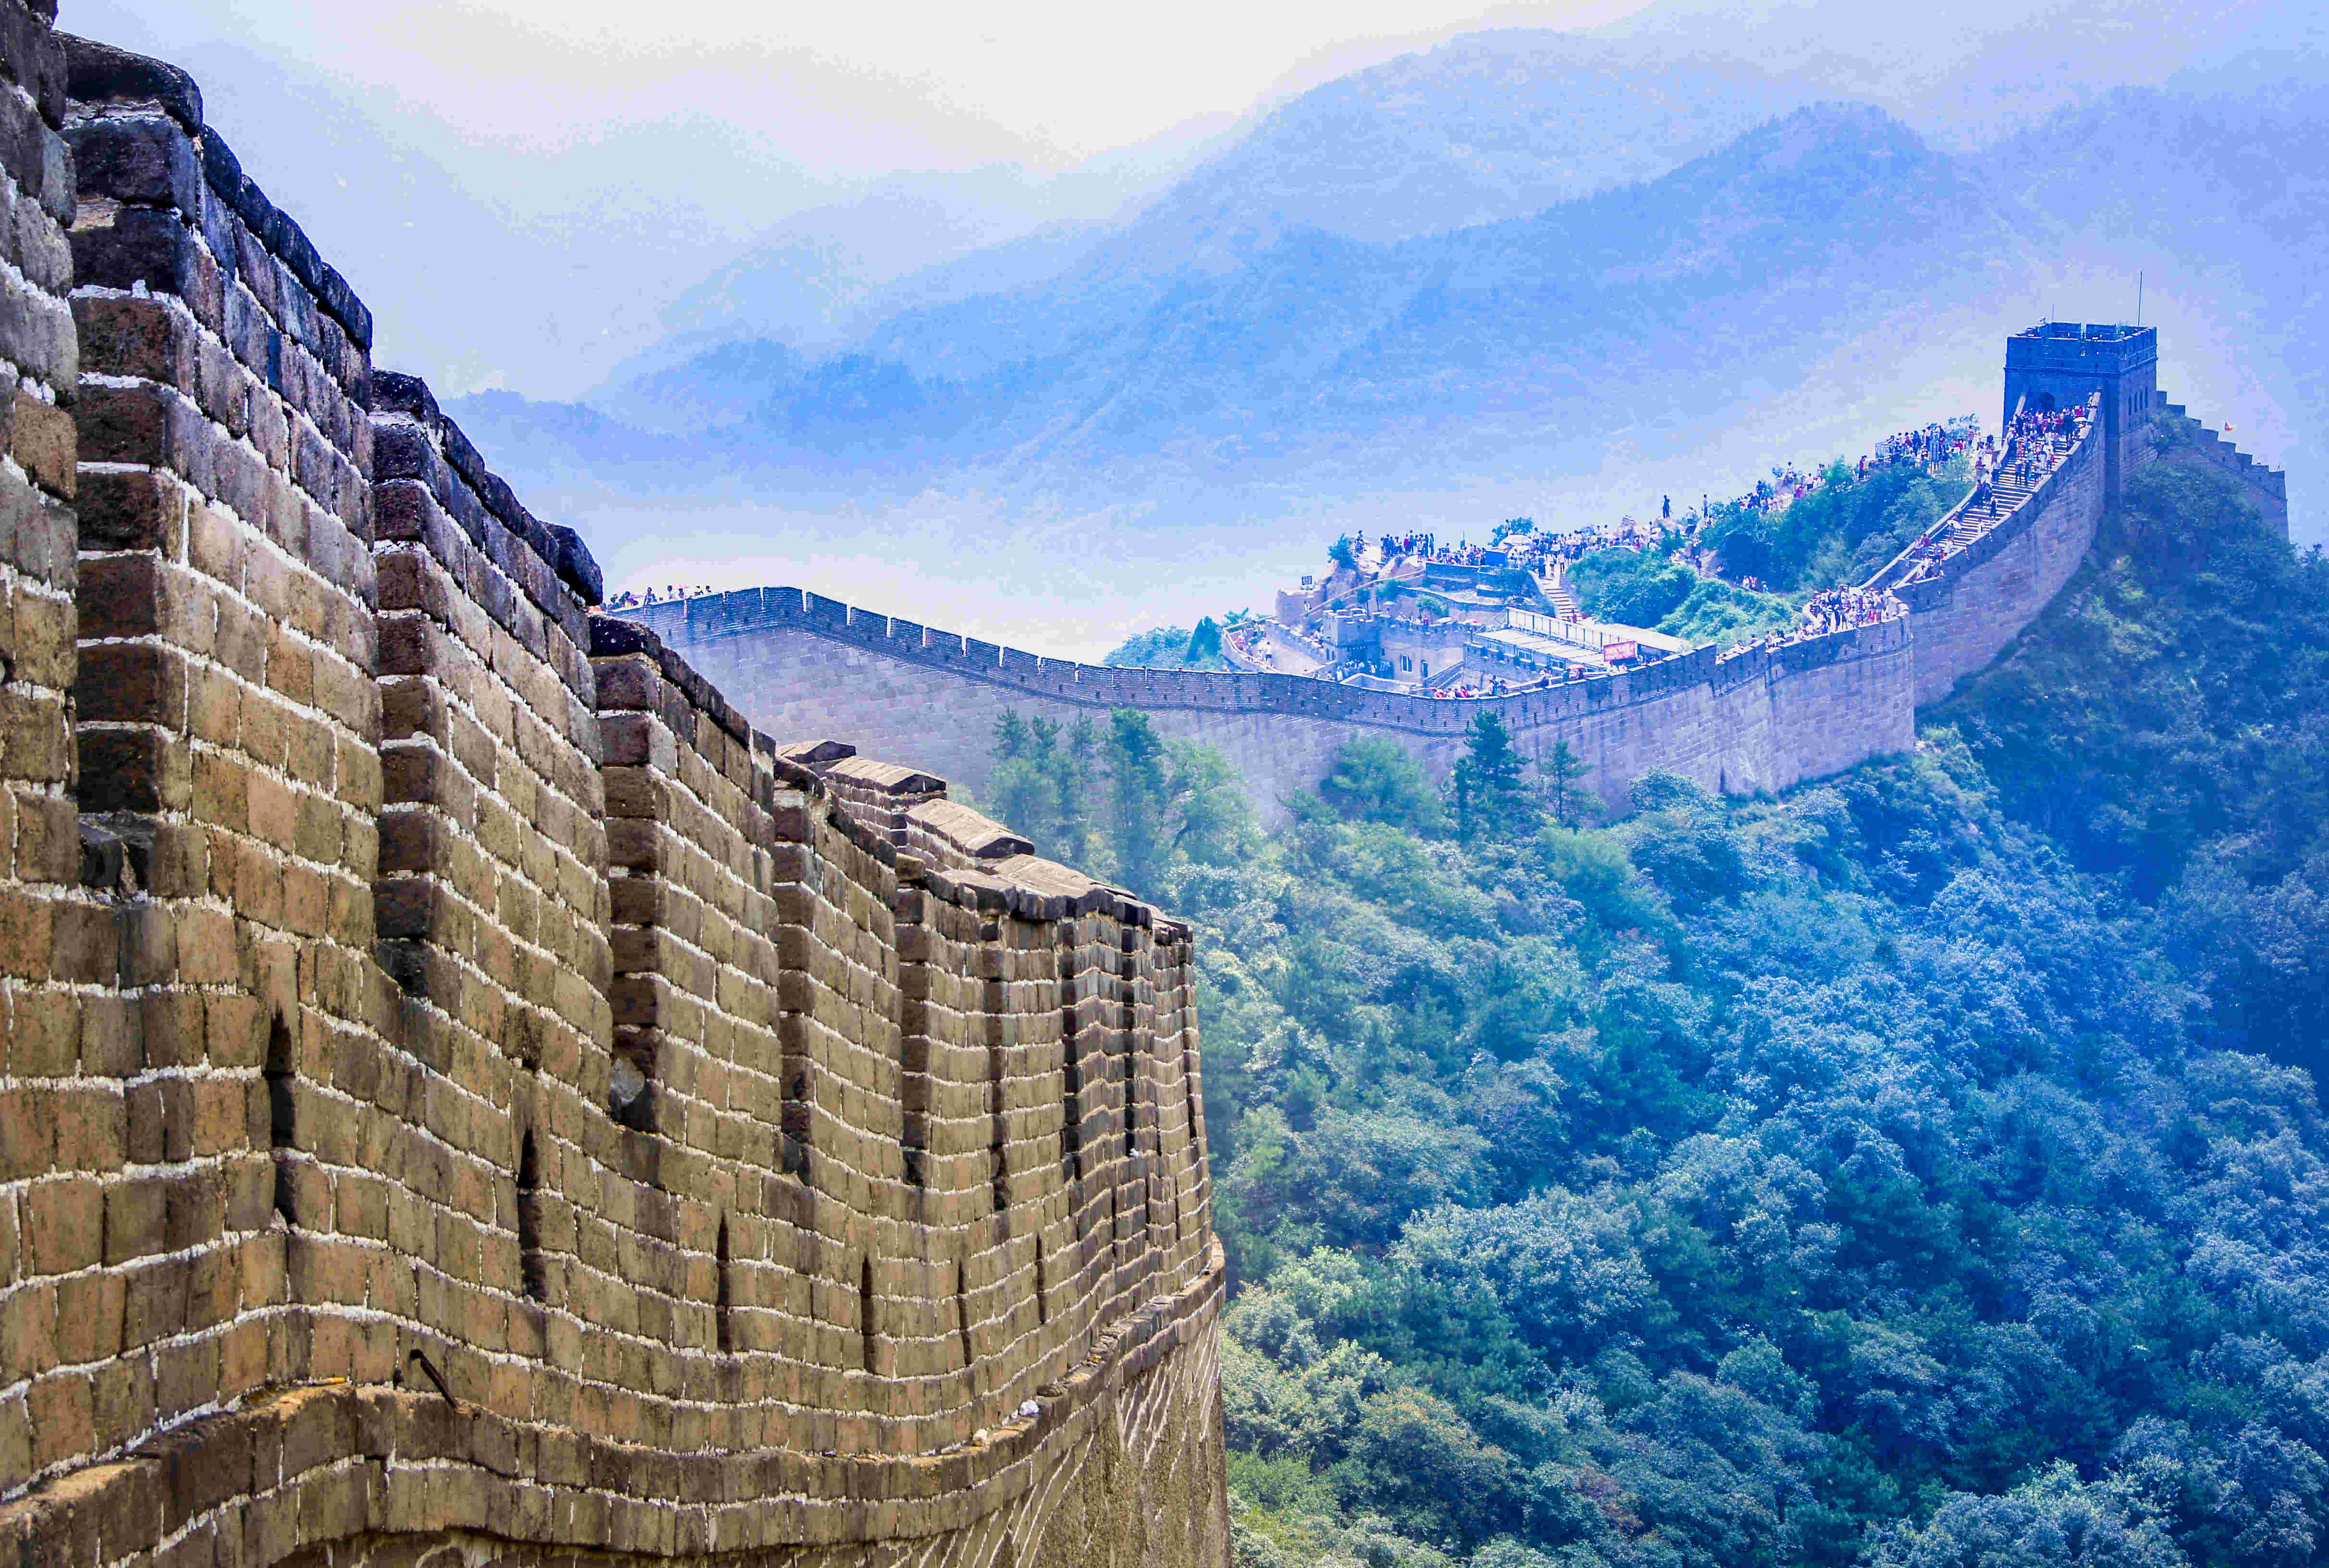 北京八达岭长城 Beijing the Badaling Great Wall